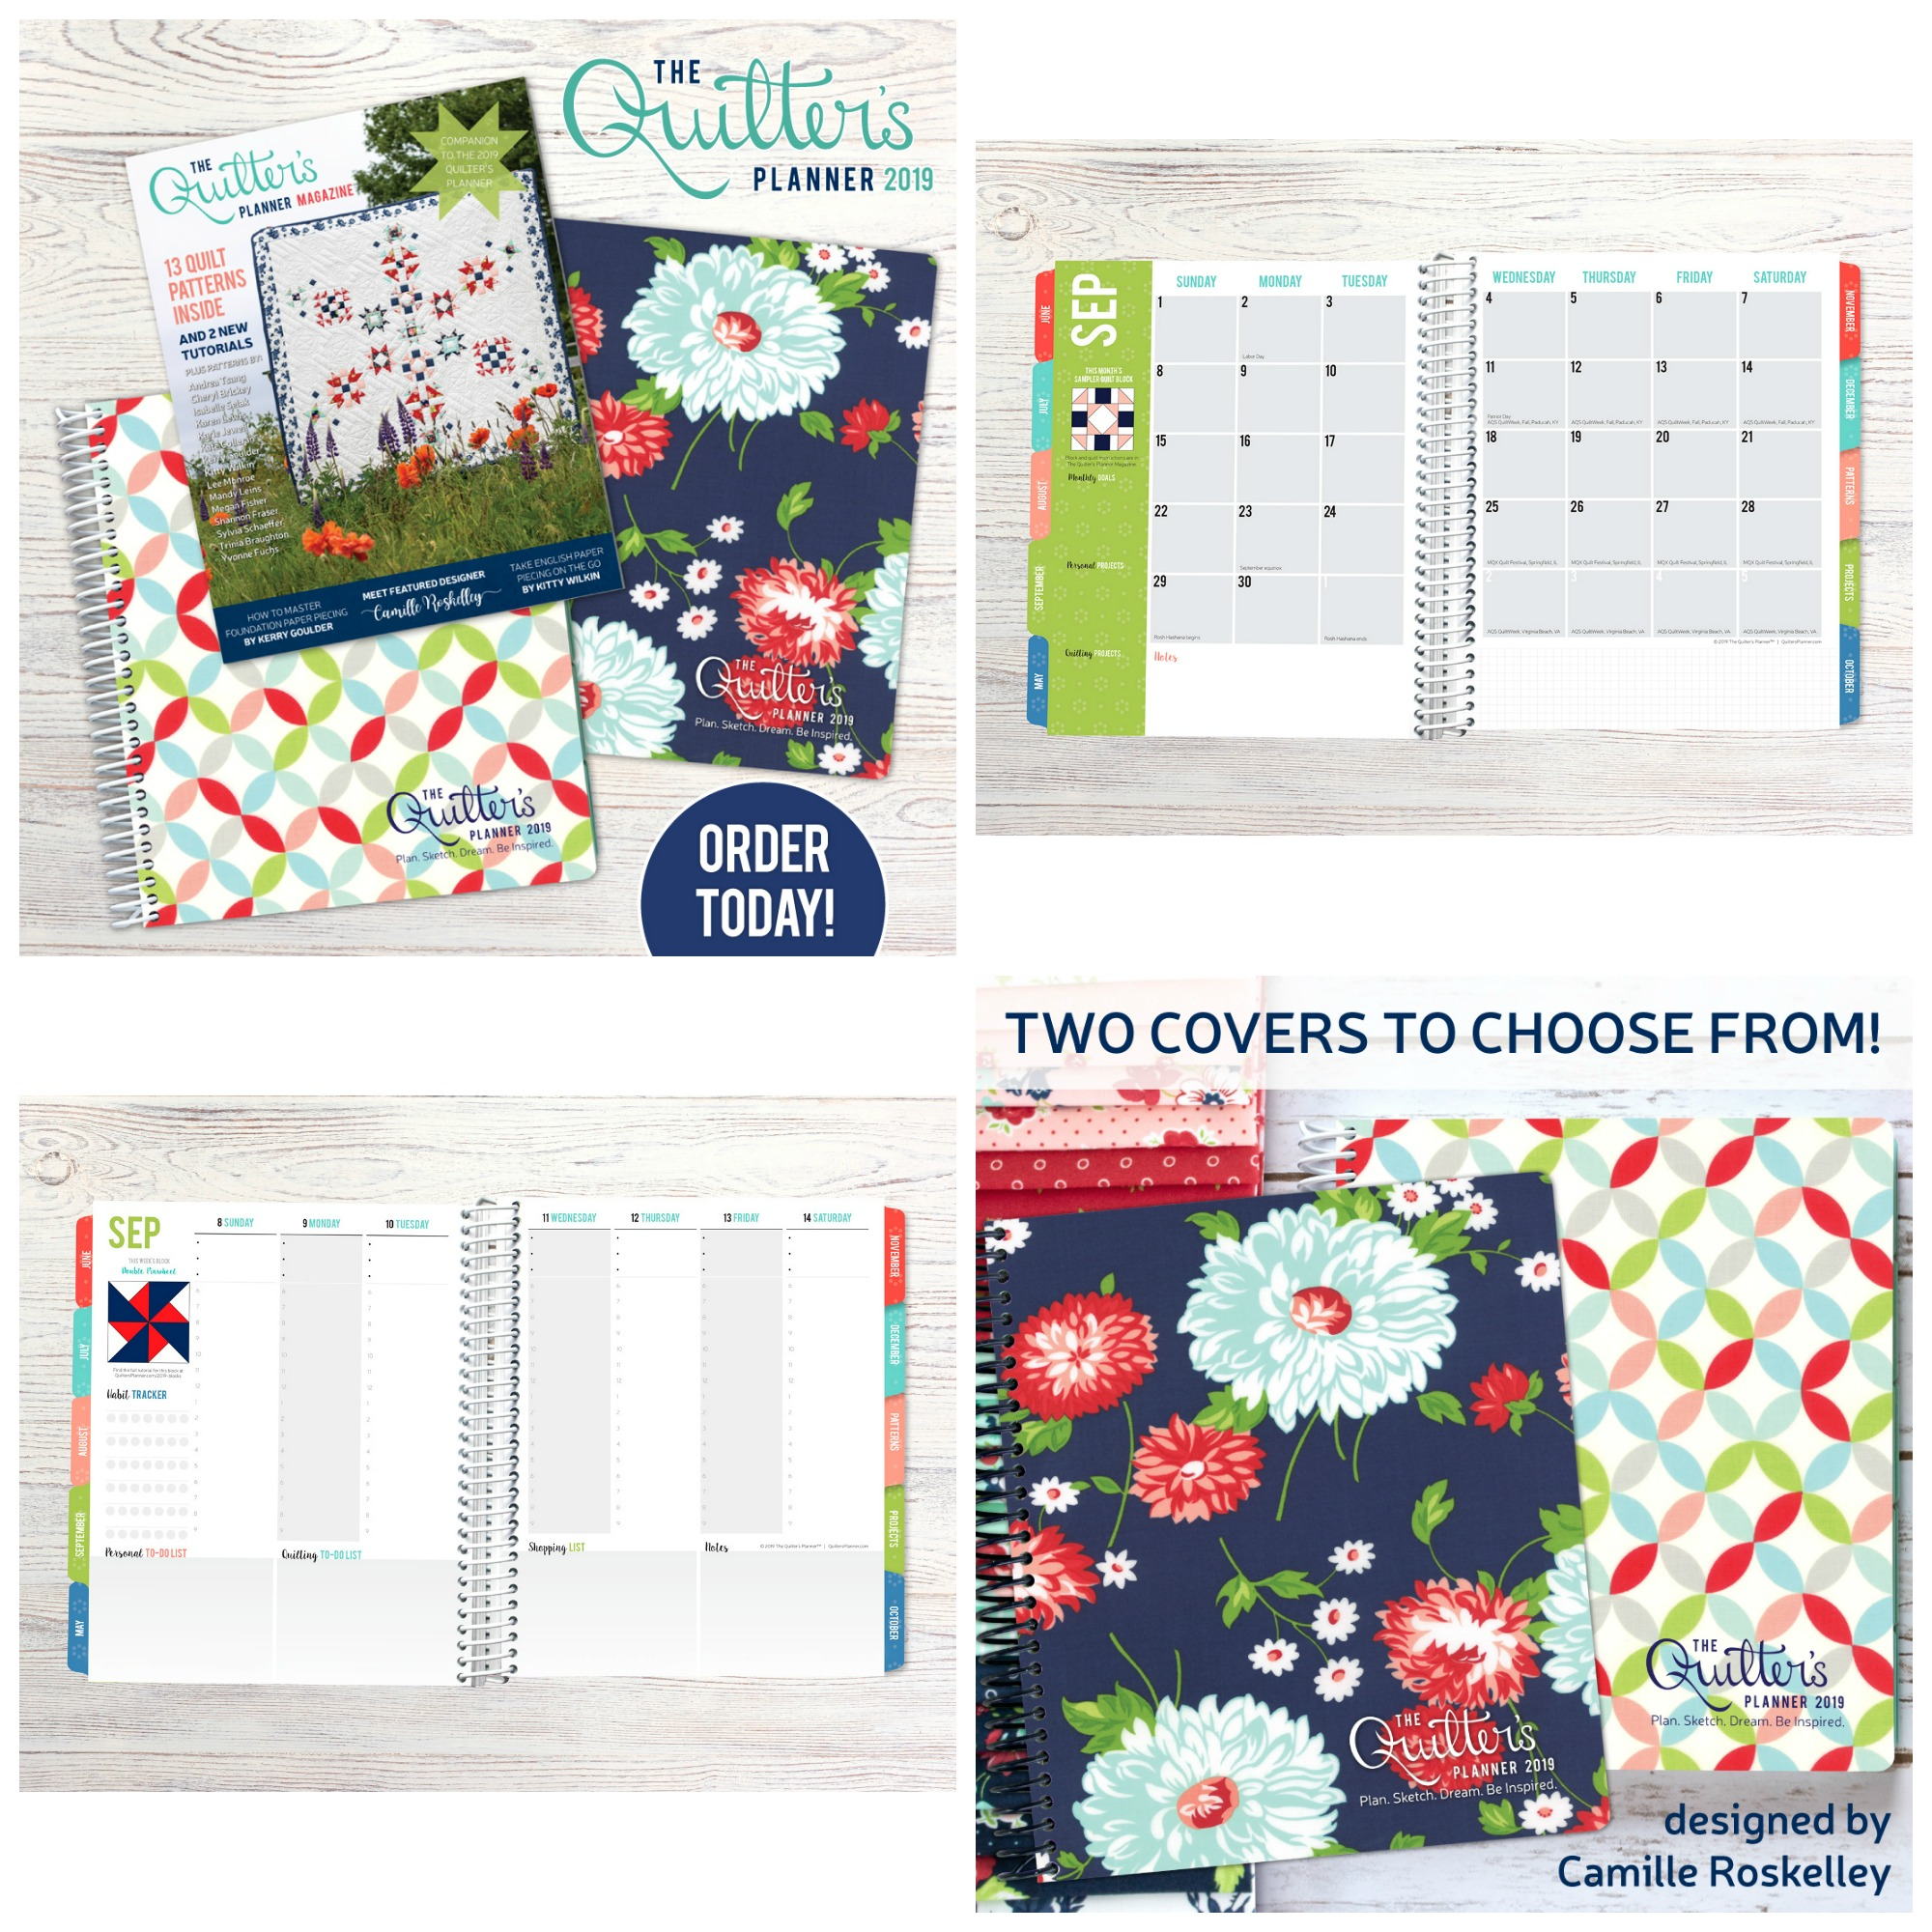 2019 Quilters Planner Collage